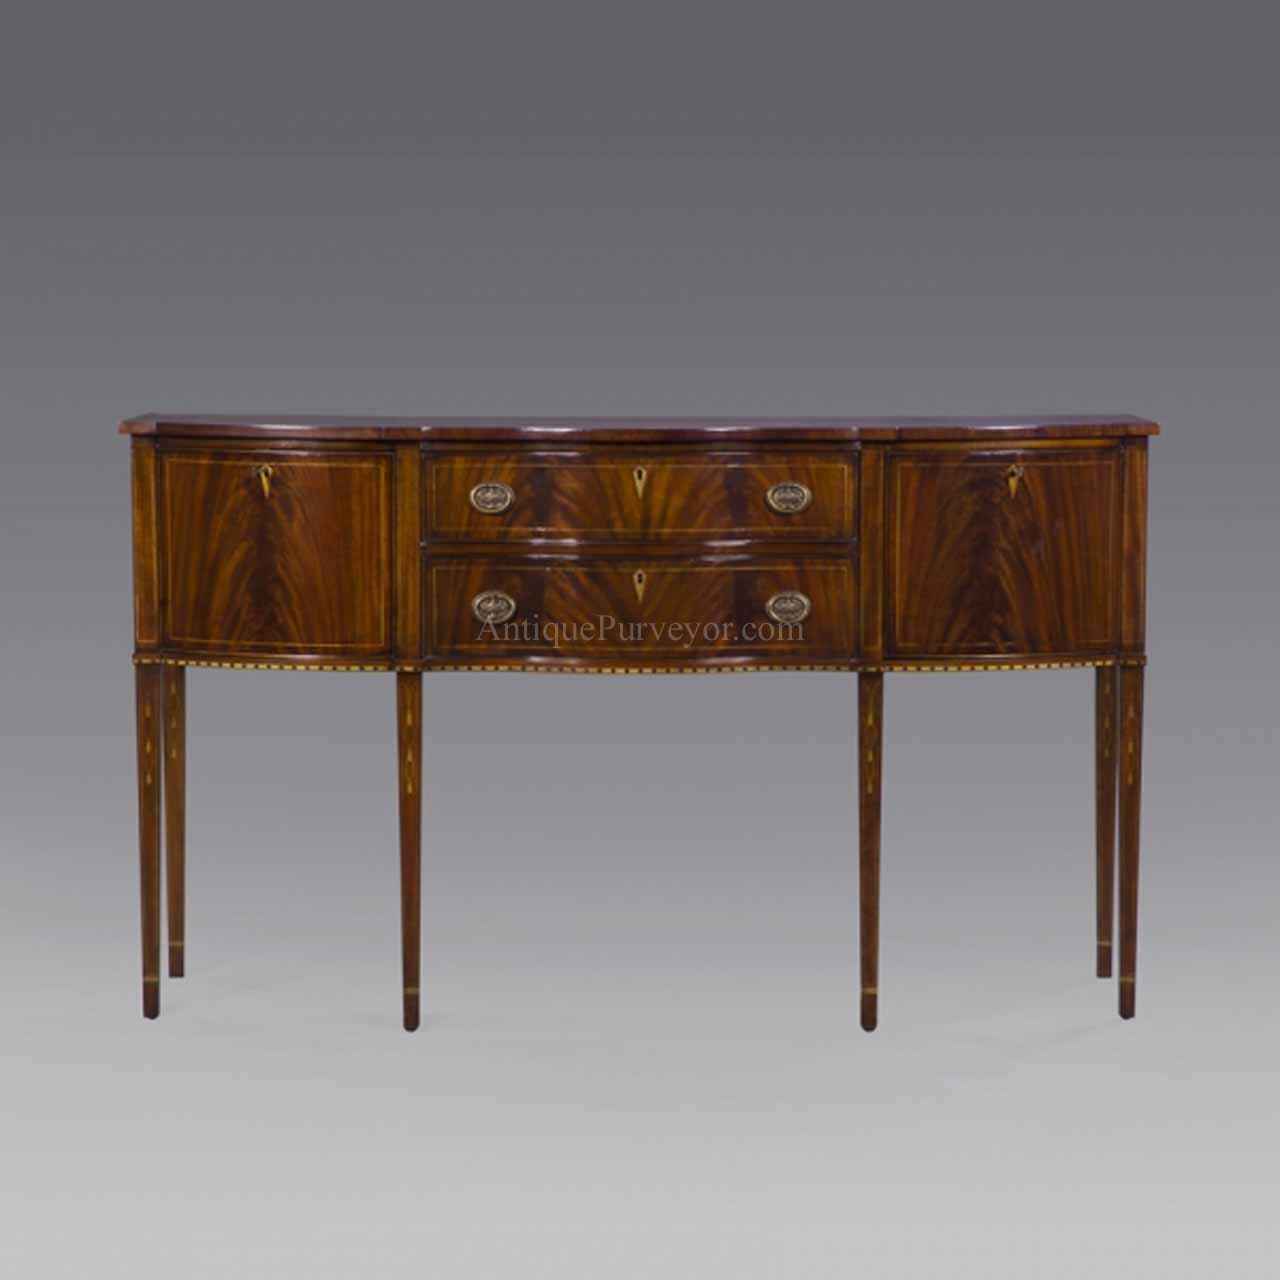 Formal hepplewhite style mahogany sideboard for the dining for Dining room sideboard